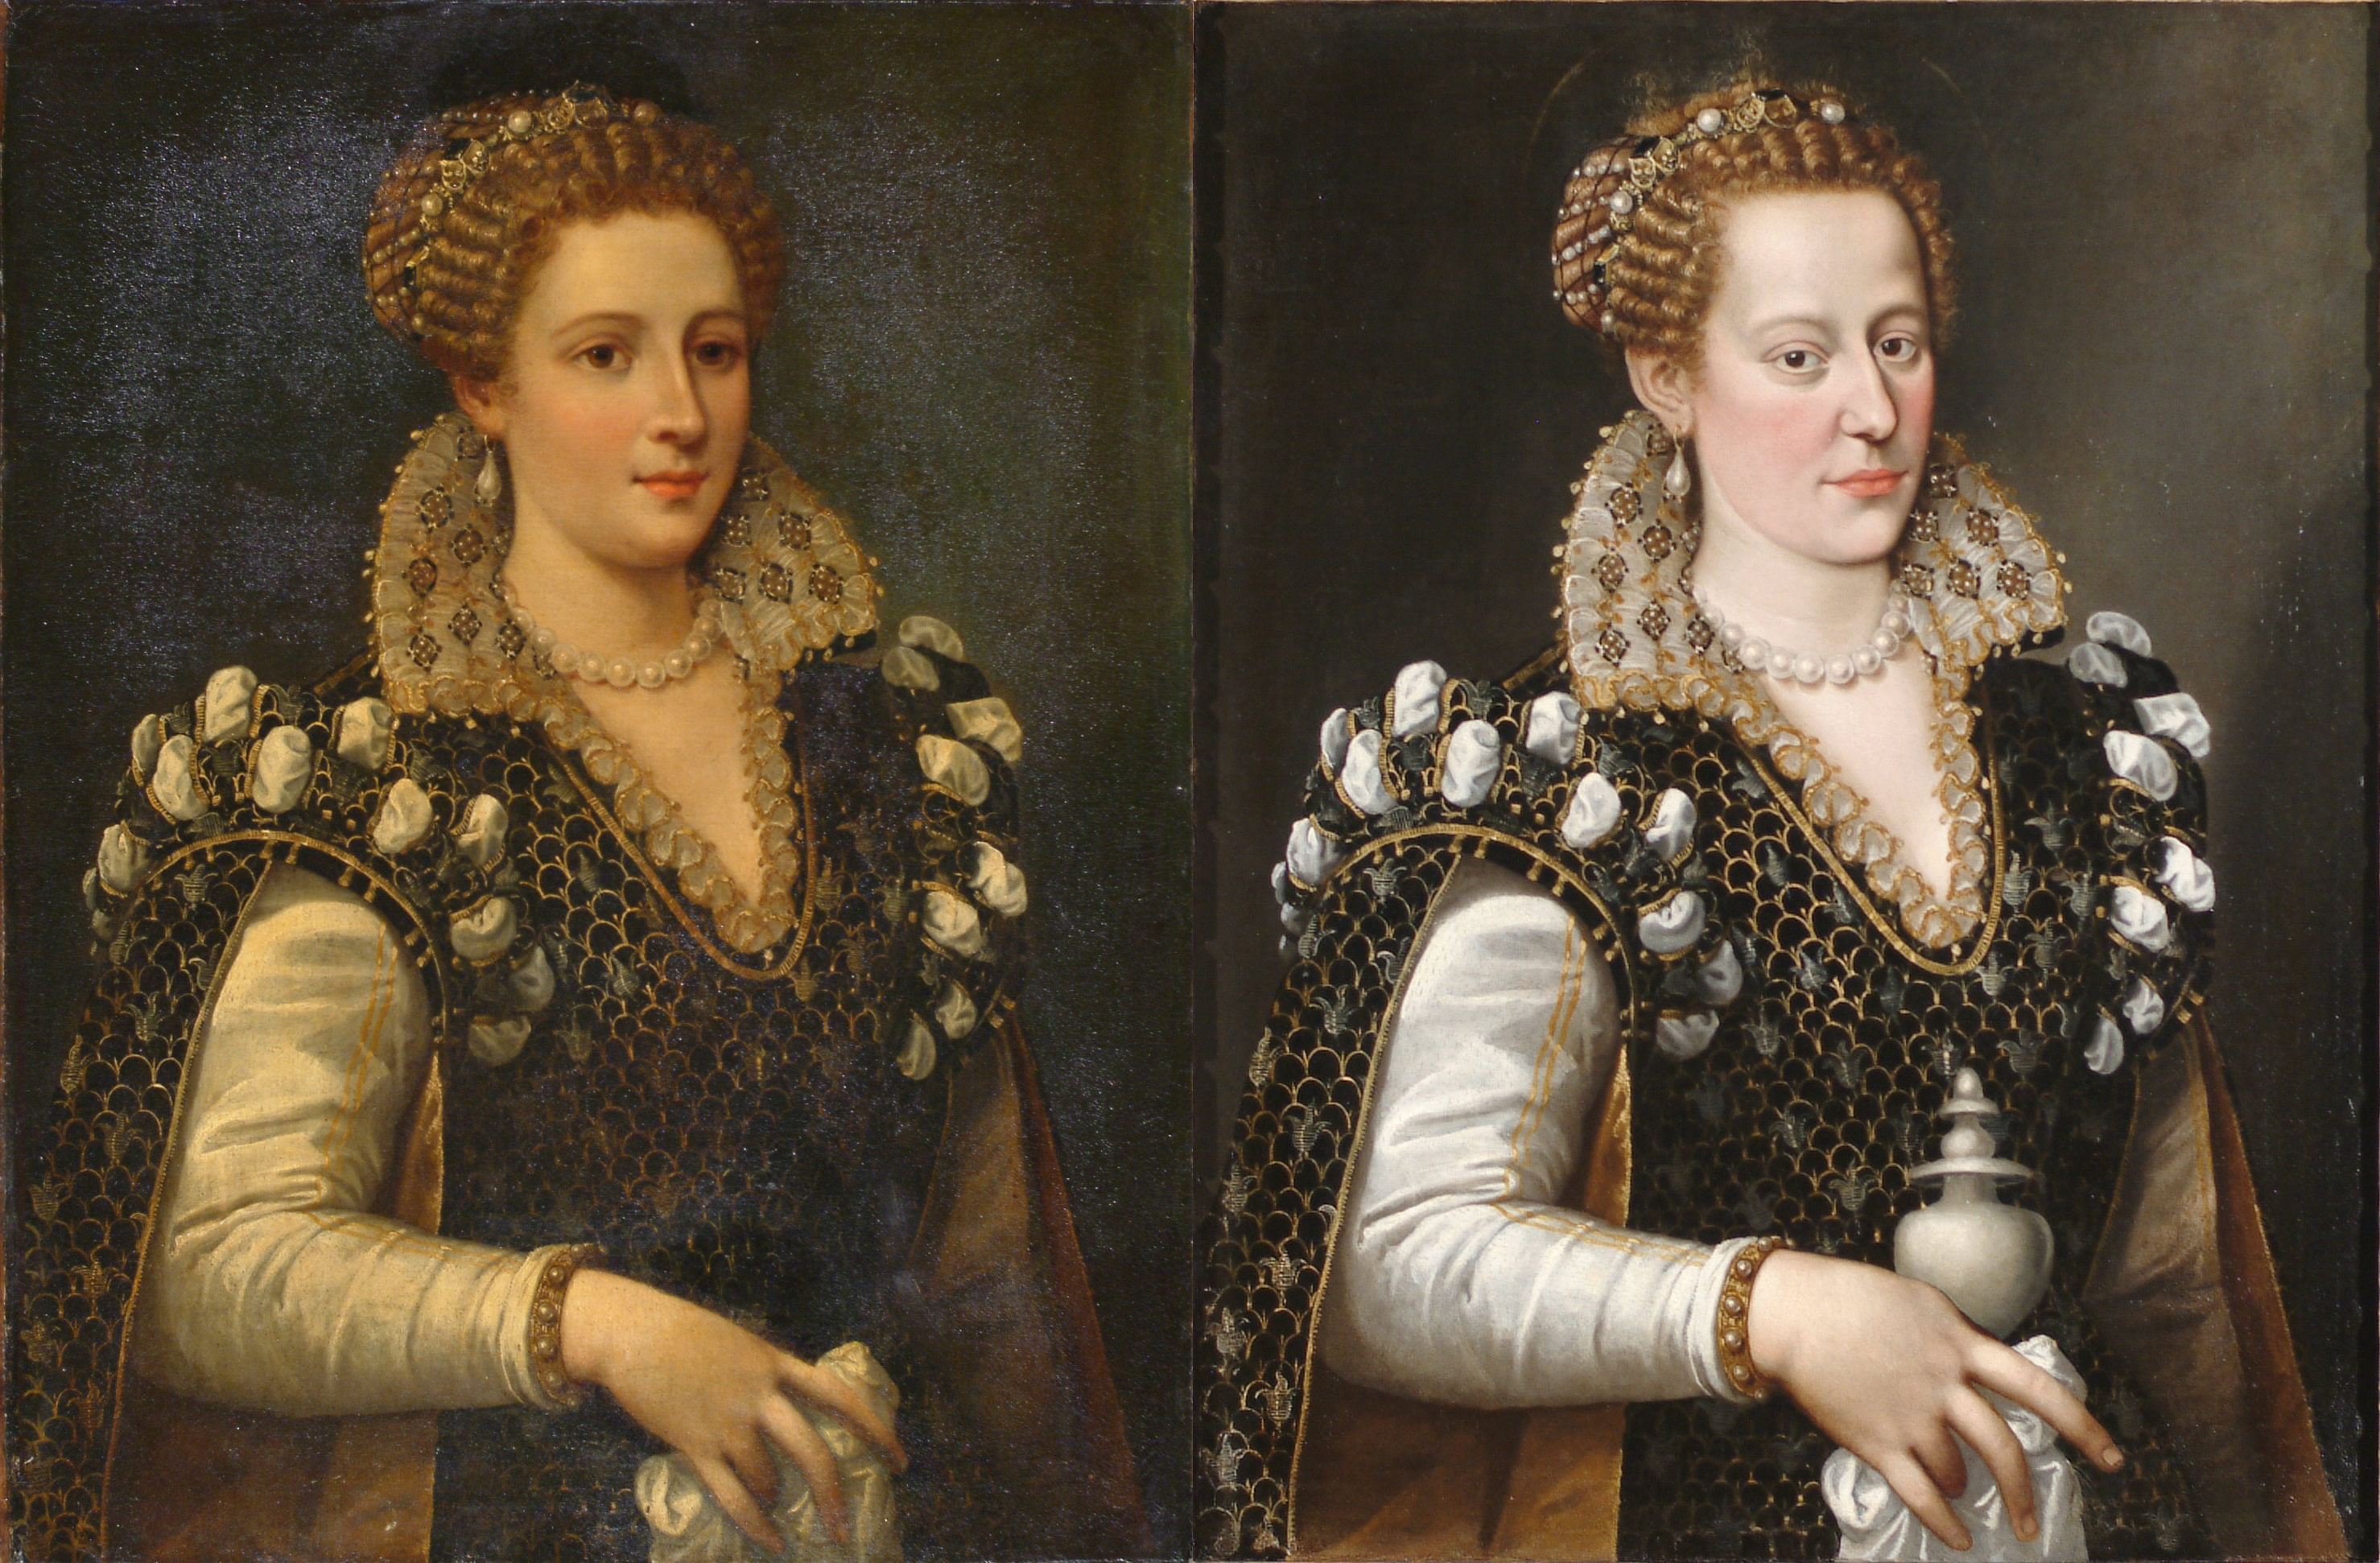 the history blog blog archive medici princess freed from bad